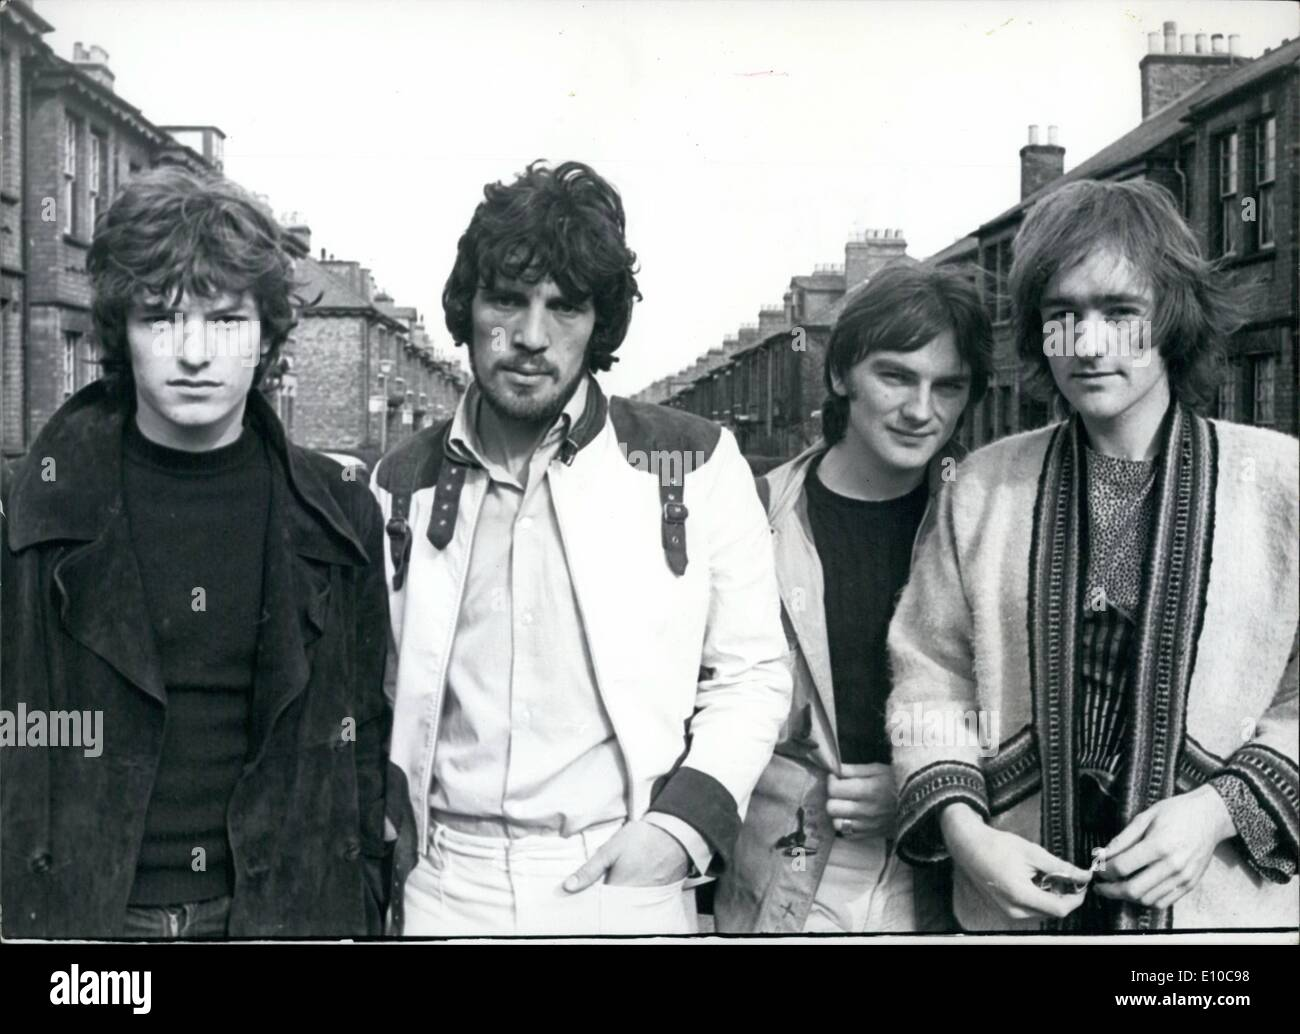 Jun. 06, 1972 - Group Picture: Left to right, Stevie Winwood, Jim Capandi, Chris Wood, David Mason.  Pi - Stock Image